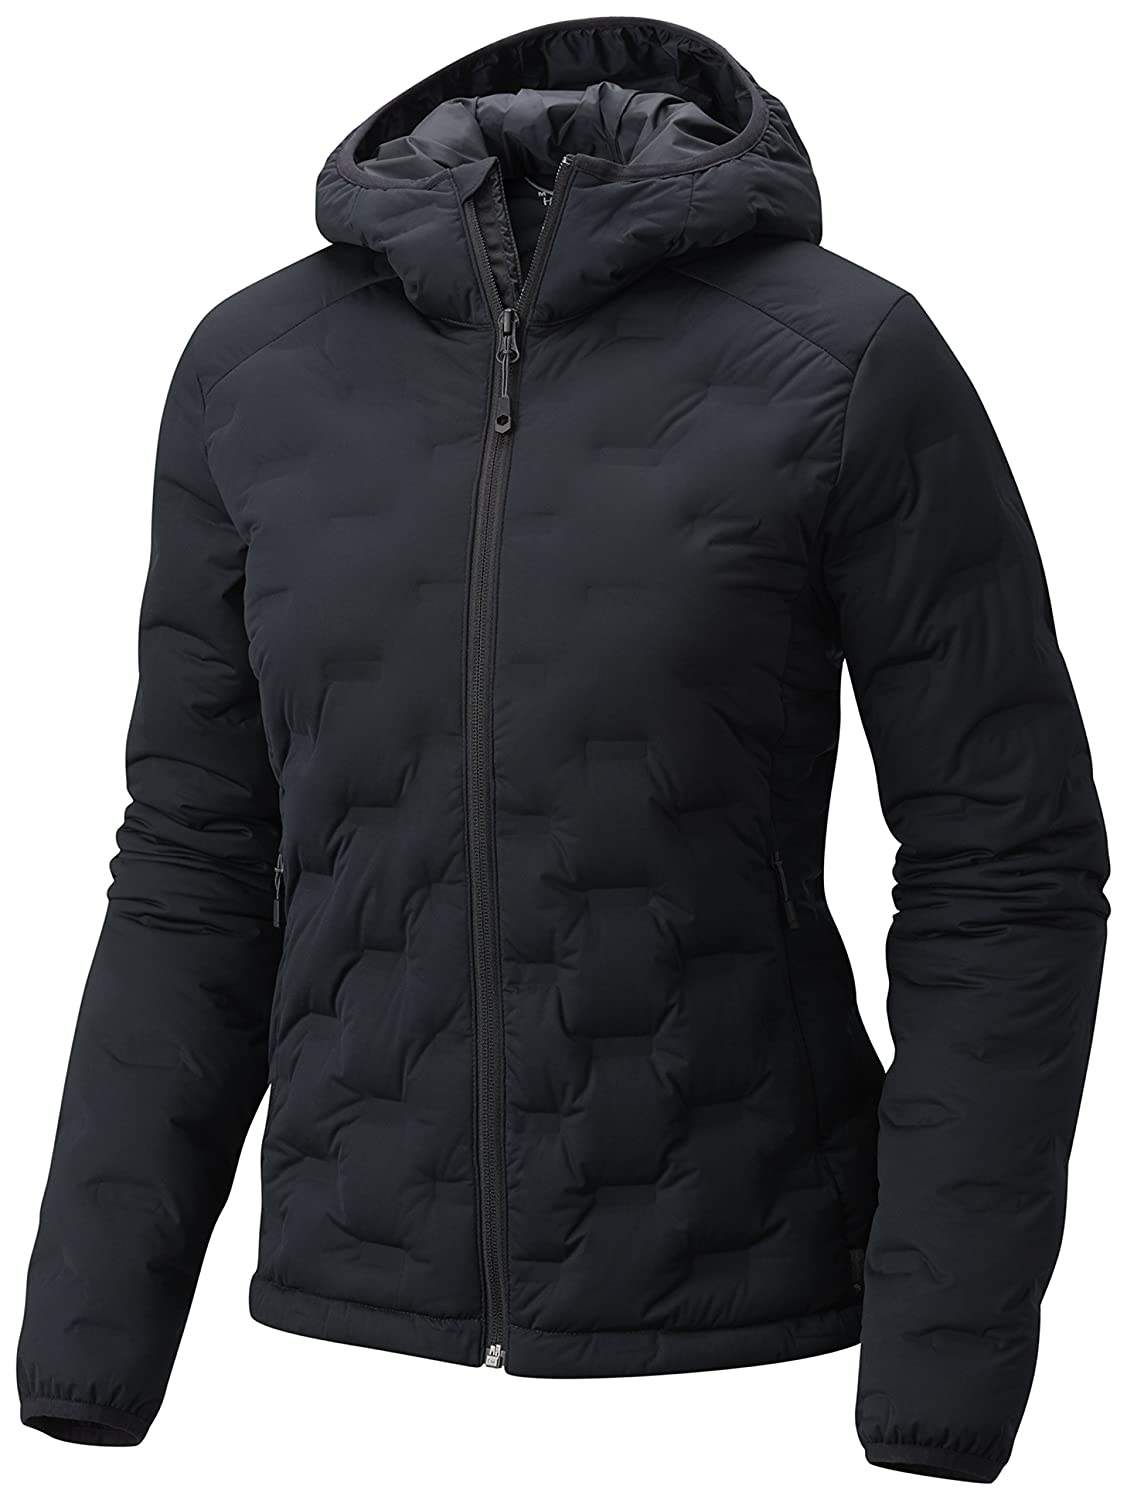 Black XSmall Mountain Hardwear StretchDown DS Hooded Jacket  Women's